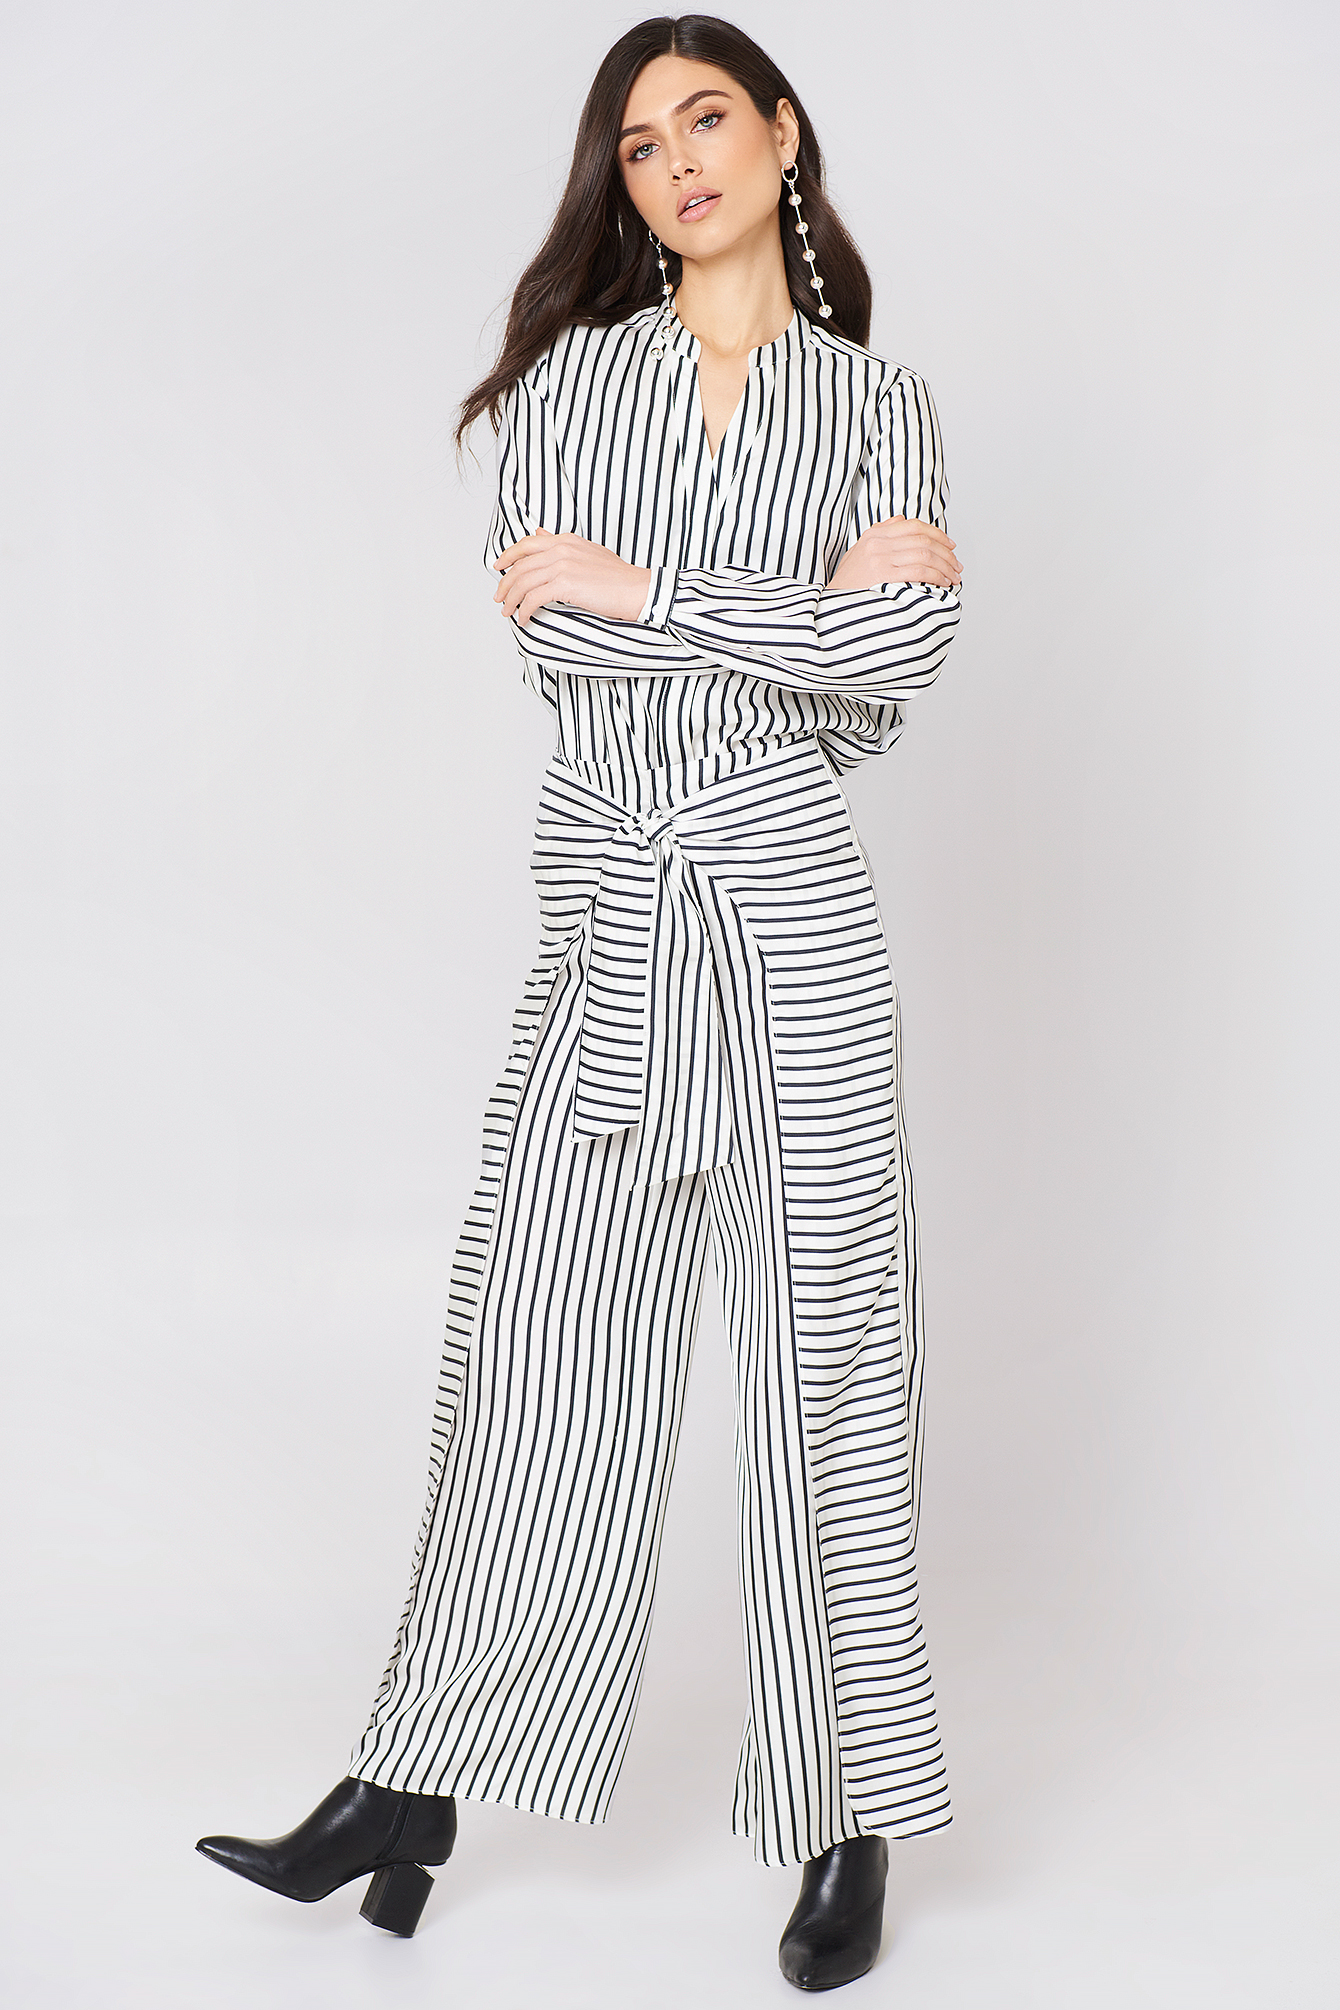 FWSS SOFIE TROUSERS - WHITE